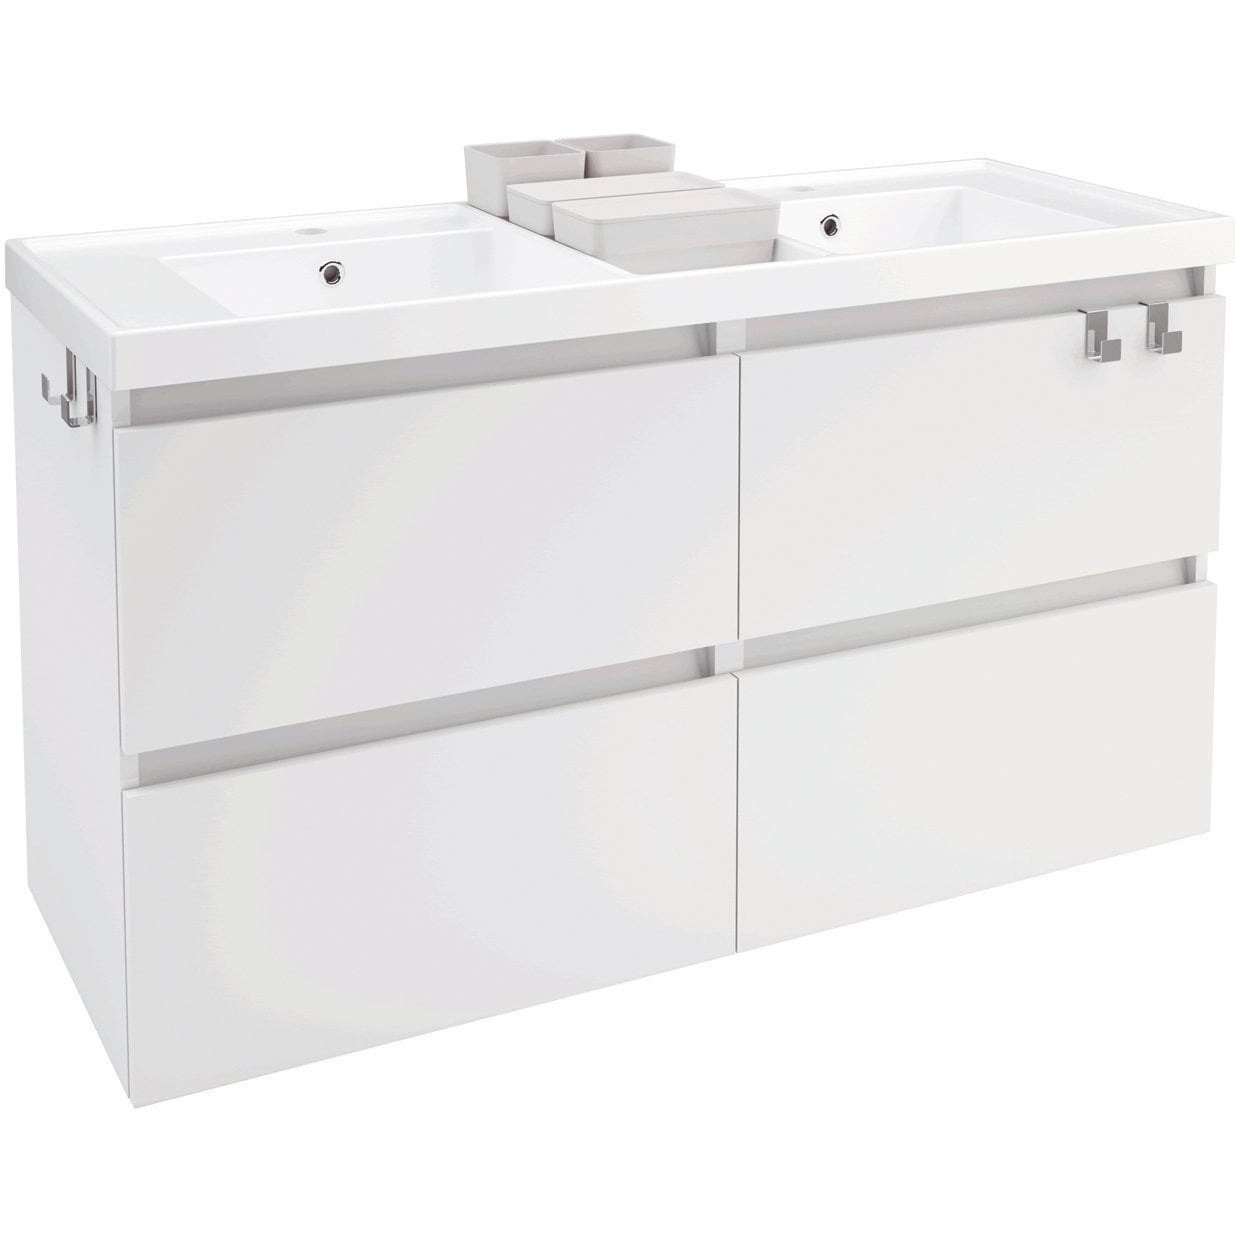 Box 48 In Wall Mounted Bathroom Vanity 4 Drawers Cabinet With Resin Washbasin Dormic Bath Collection Bathroom Vanities And Sink Consoles 2500 00 3000 00 4 Drawers 44 To 50 Inches Anthracite Ash